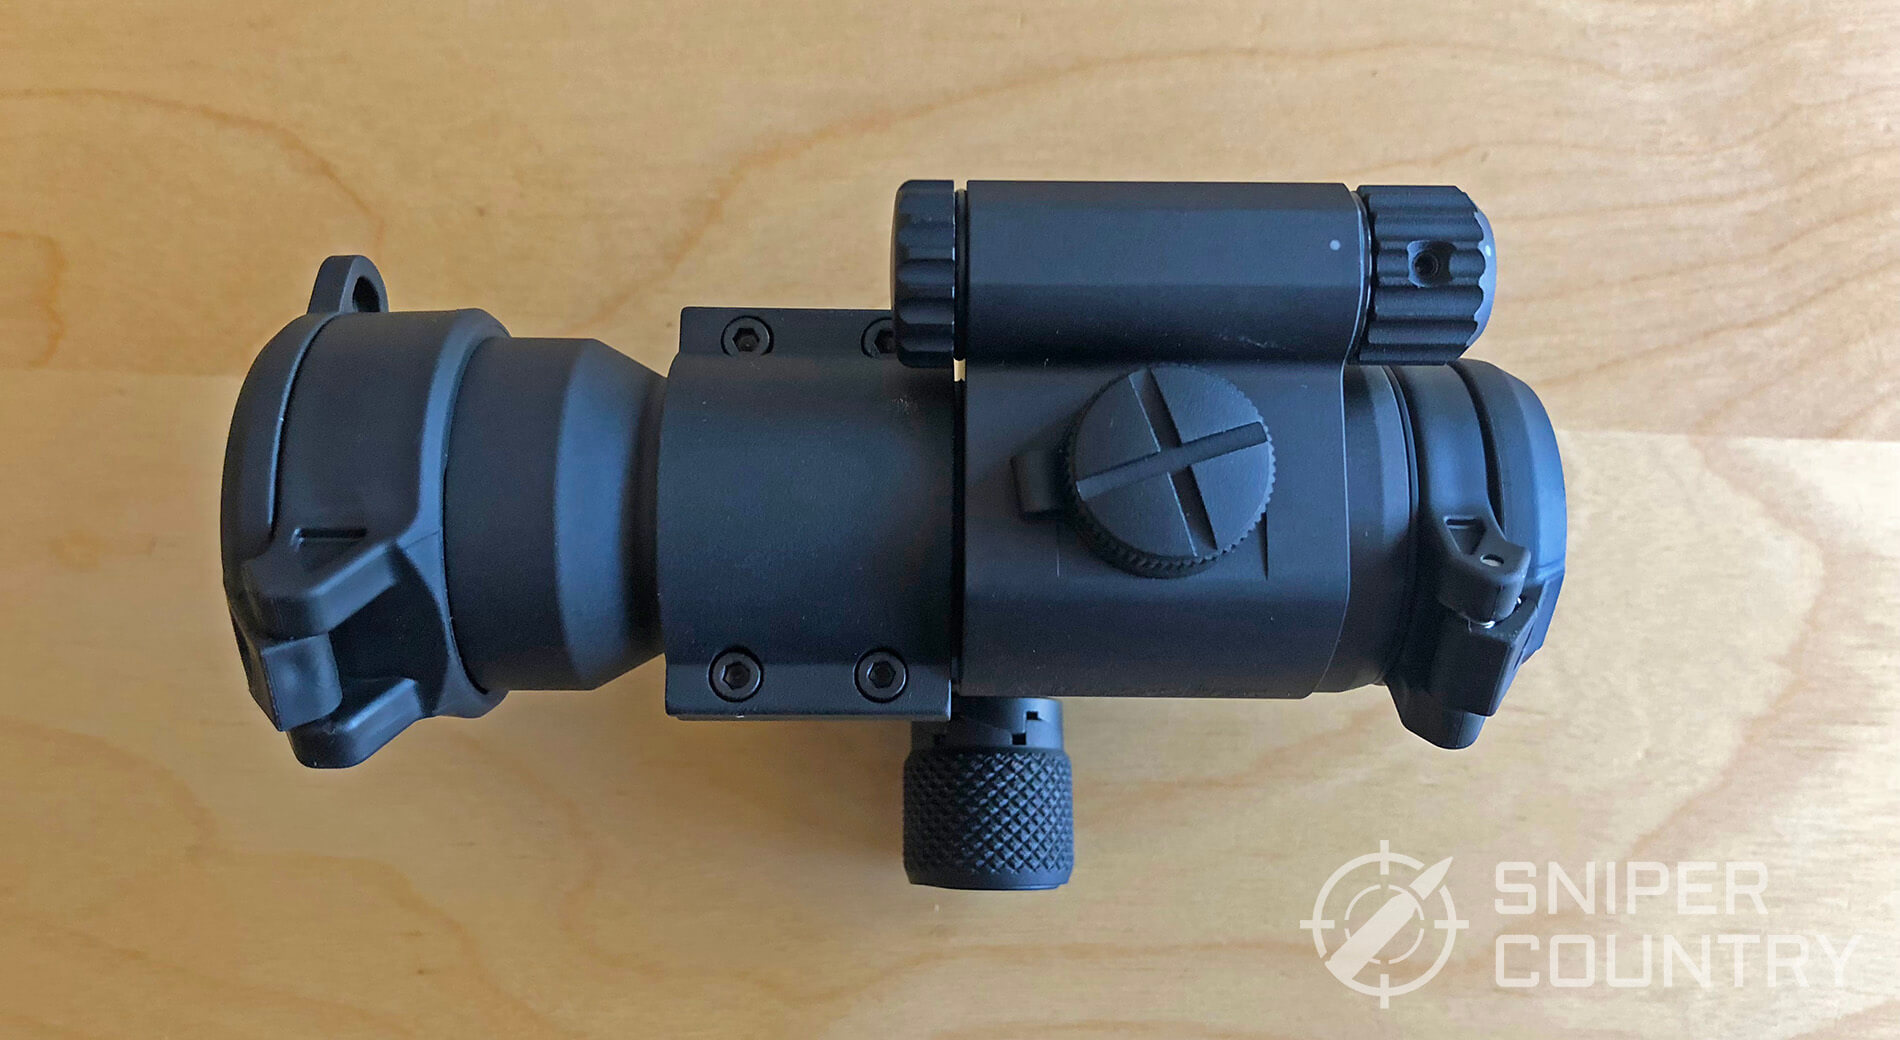 Rail clamp knob on Aimpoint PRO